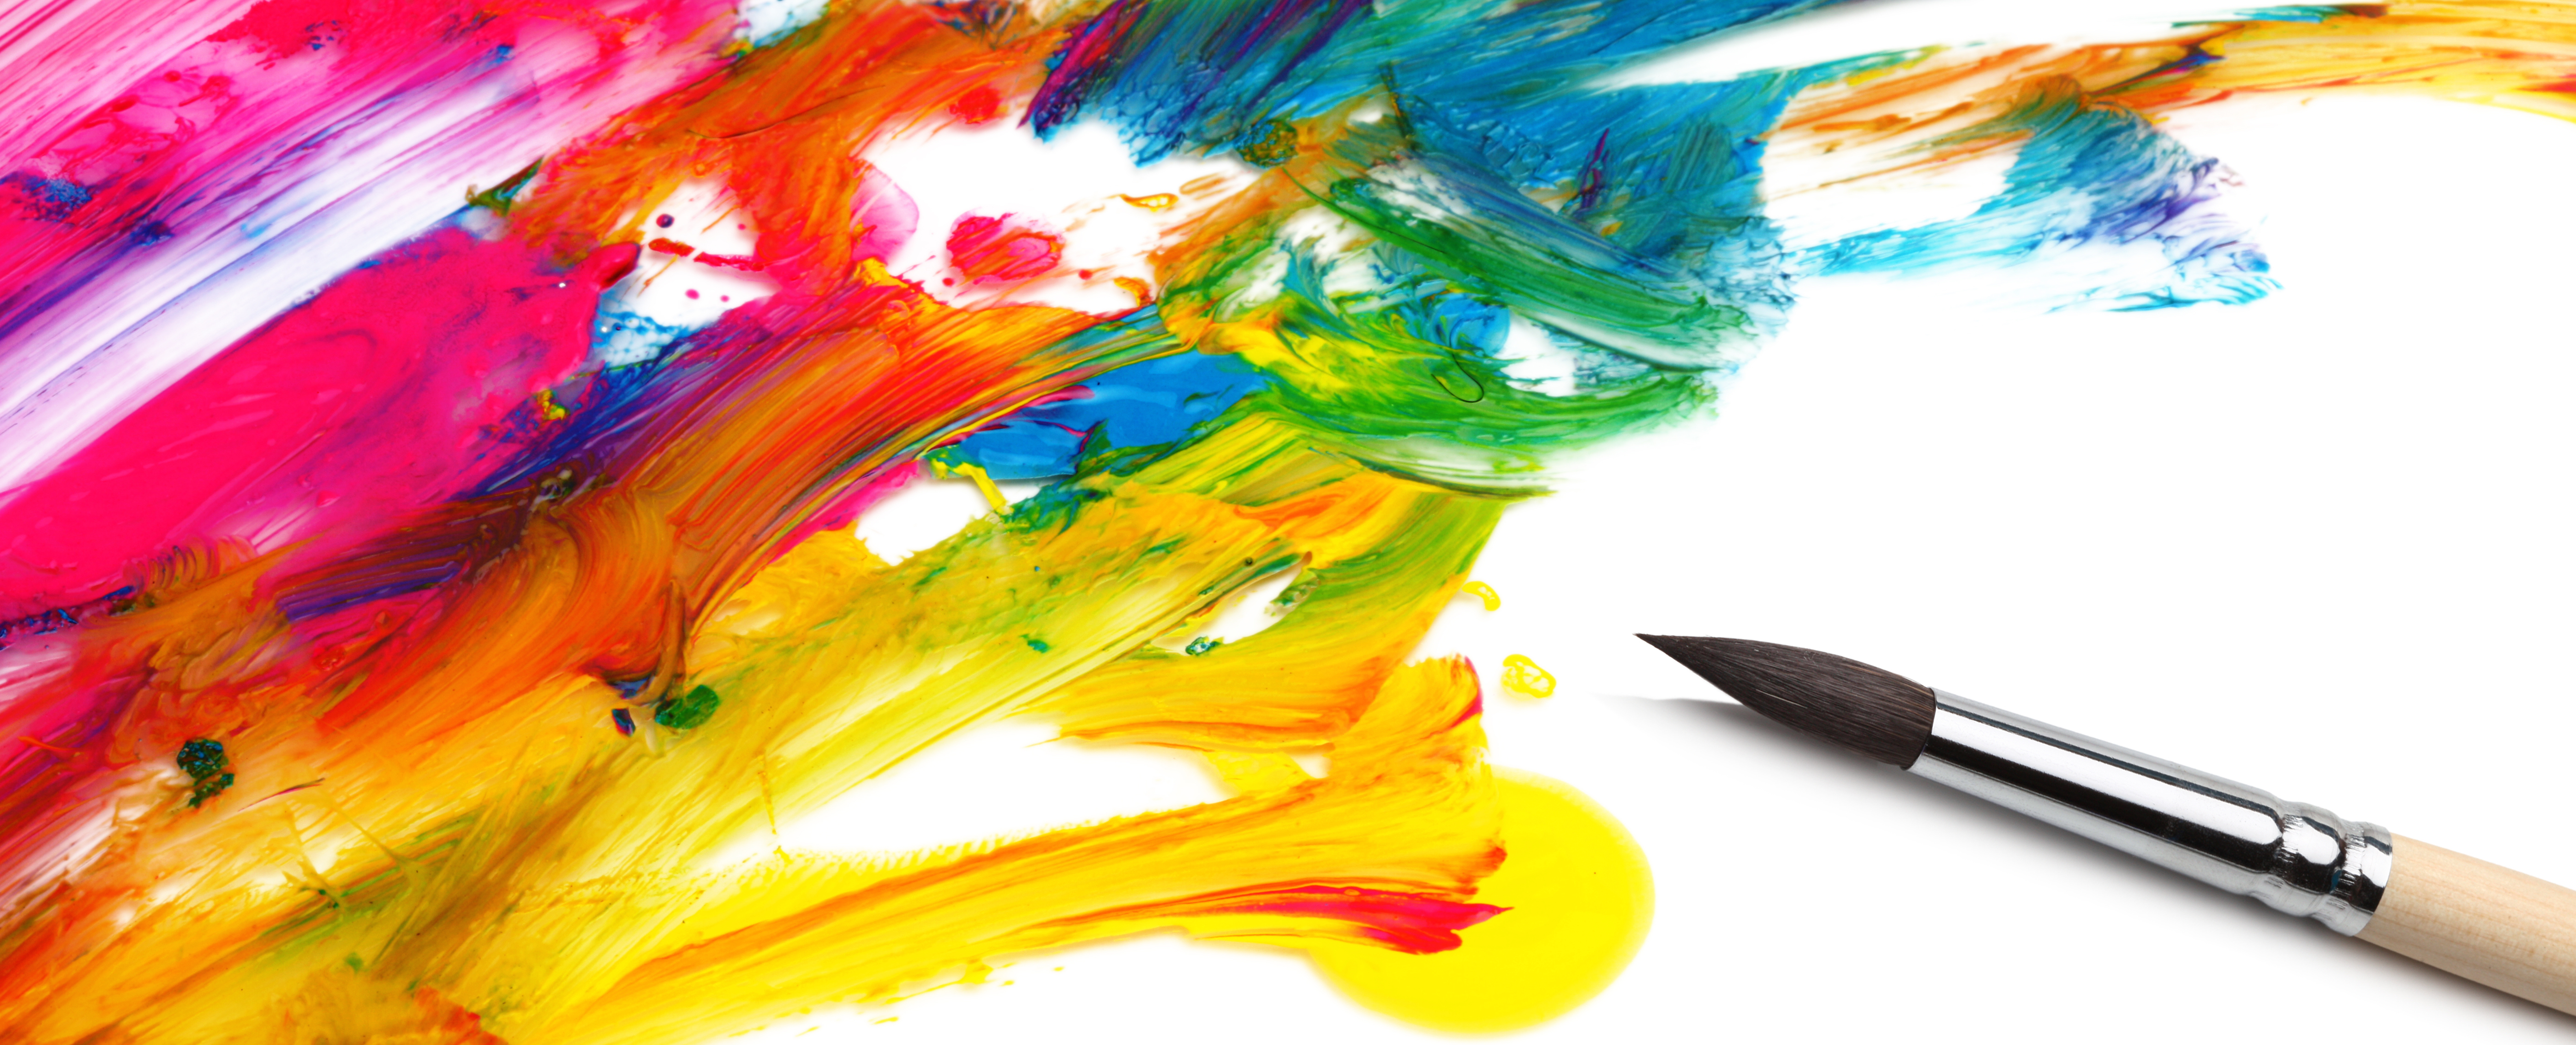 paint-brush-painting-bright-colors-the-artist